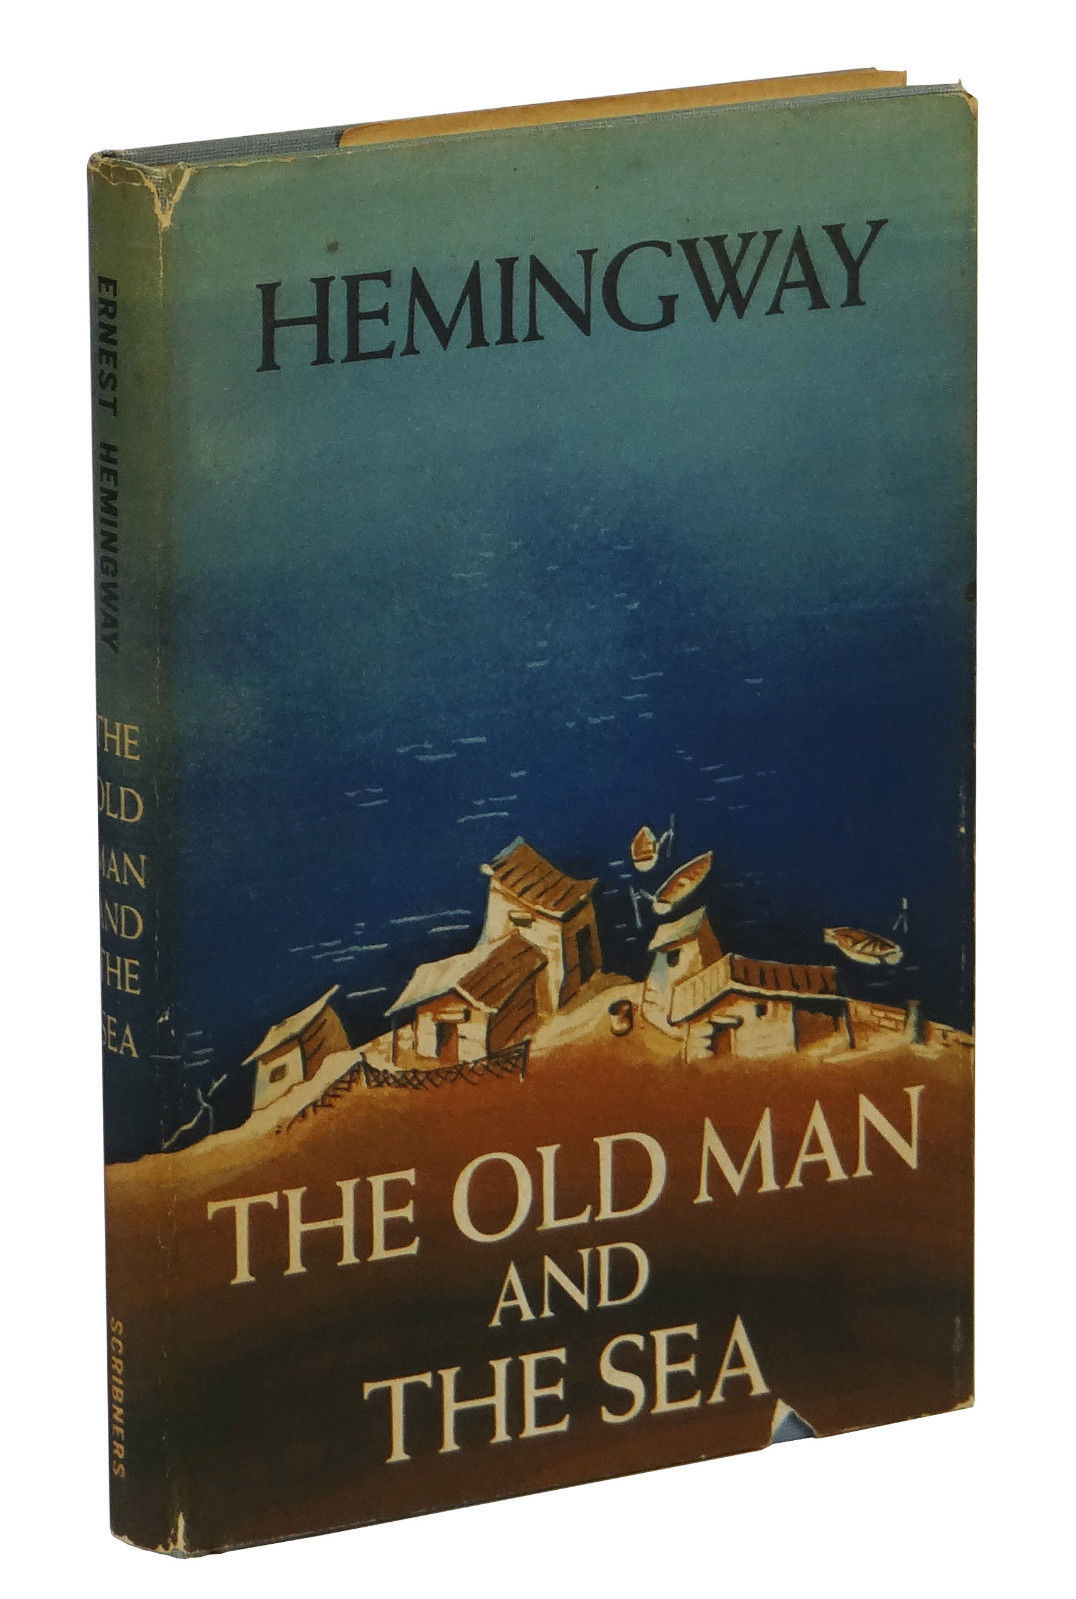 an overview of the book the old man and the sea by ernest hemingway Buy the old man and the sea from dymocks online bookstore find latest reader reviews and much more at dymocks.